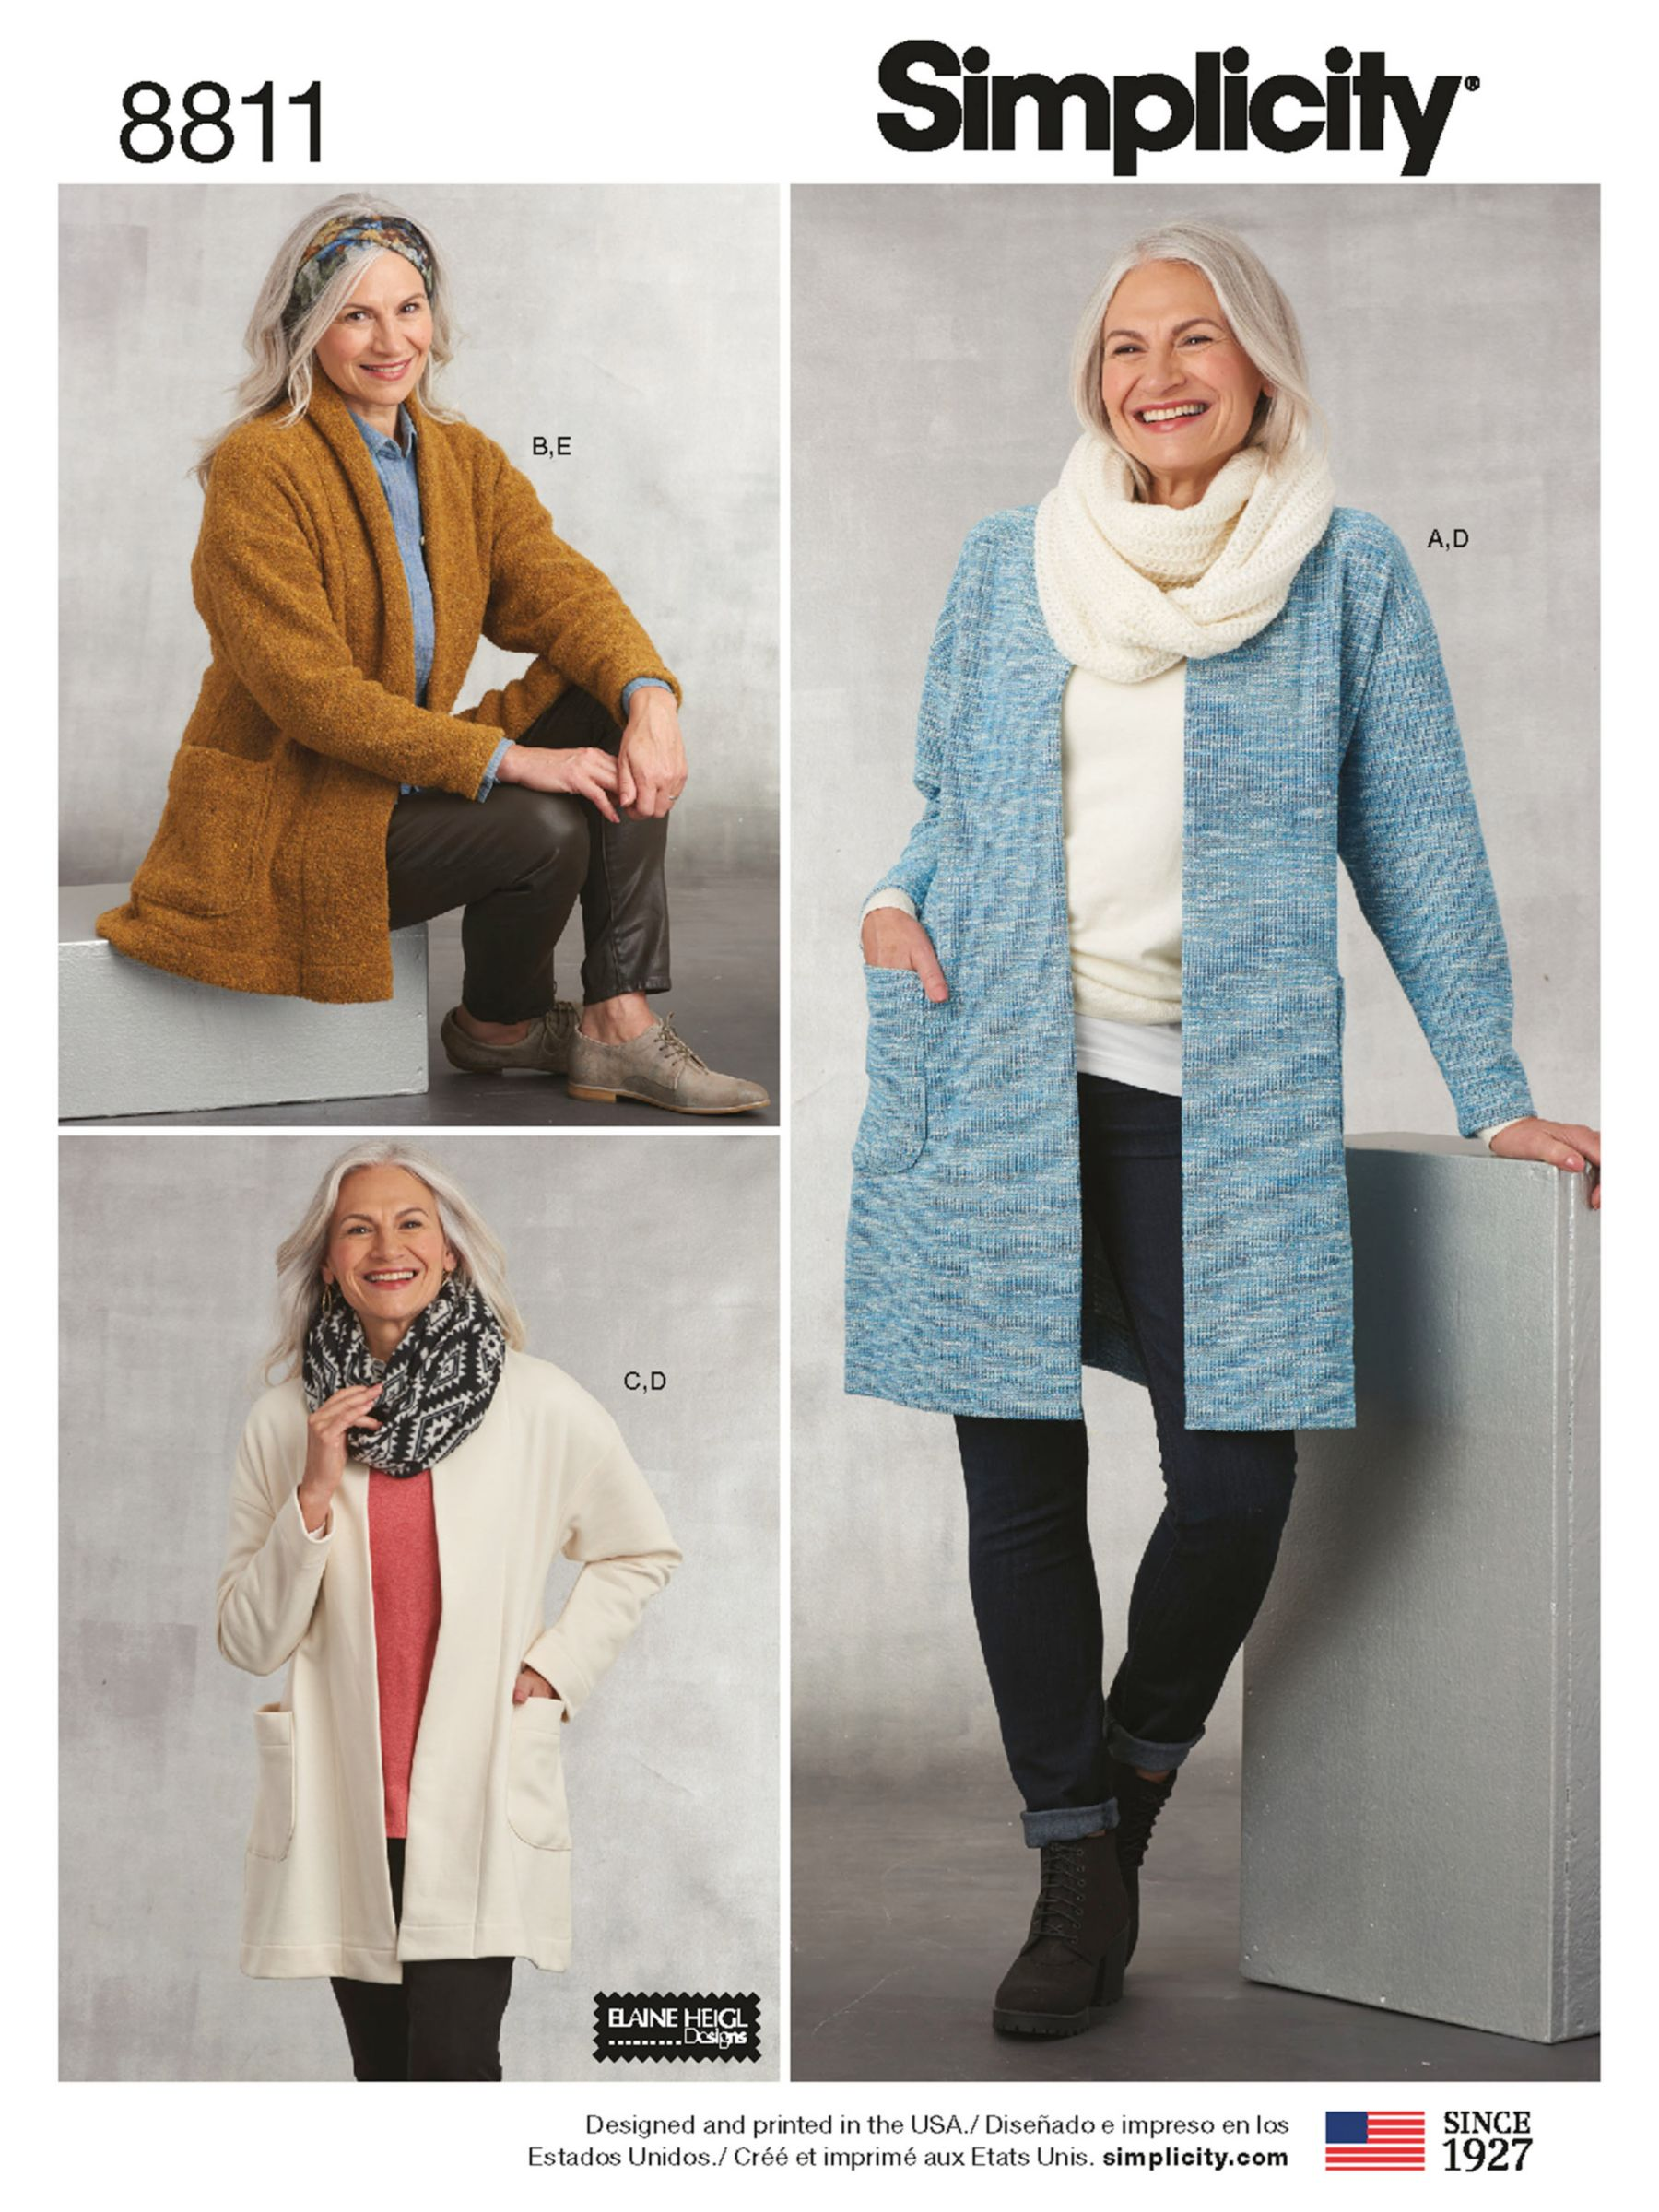 Simplicity Simplicity Women's Cardigans, Scarves and Headbands Sewing Pattern, 8811, A